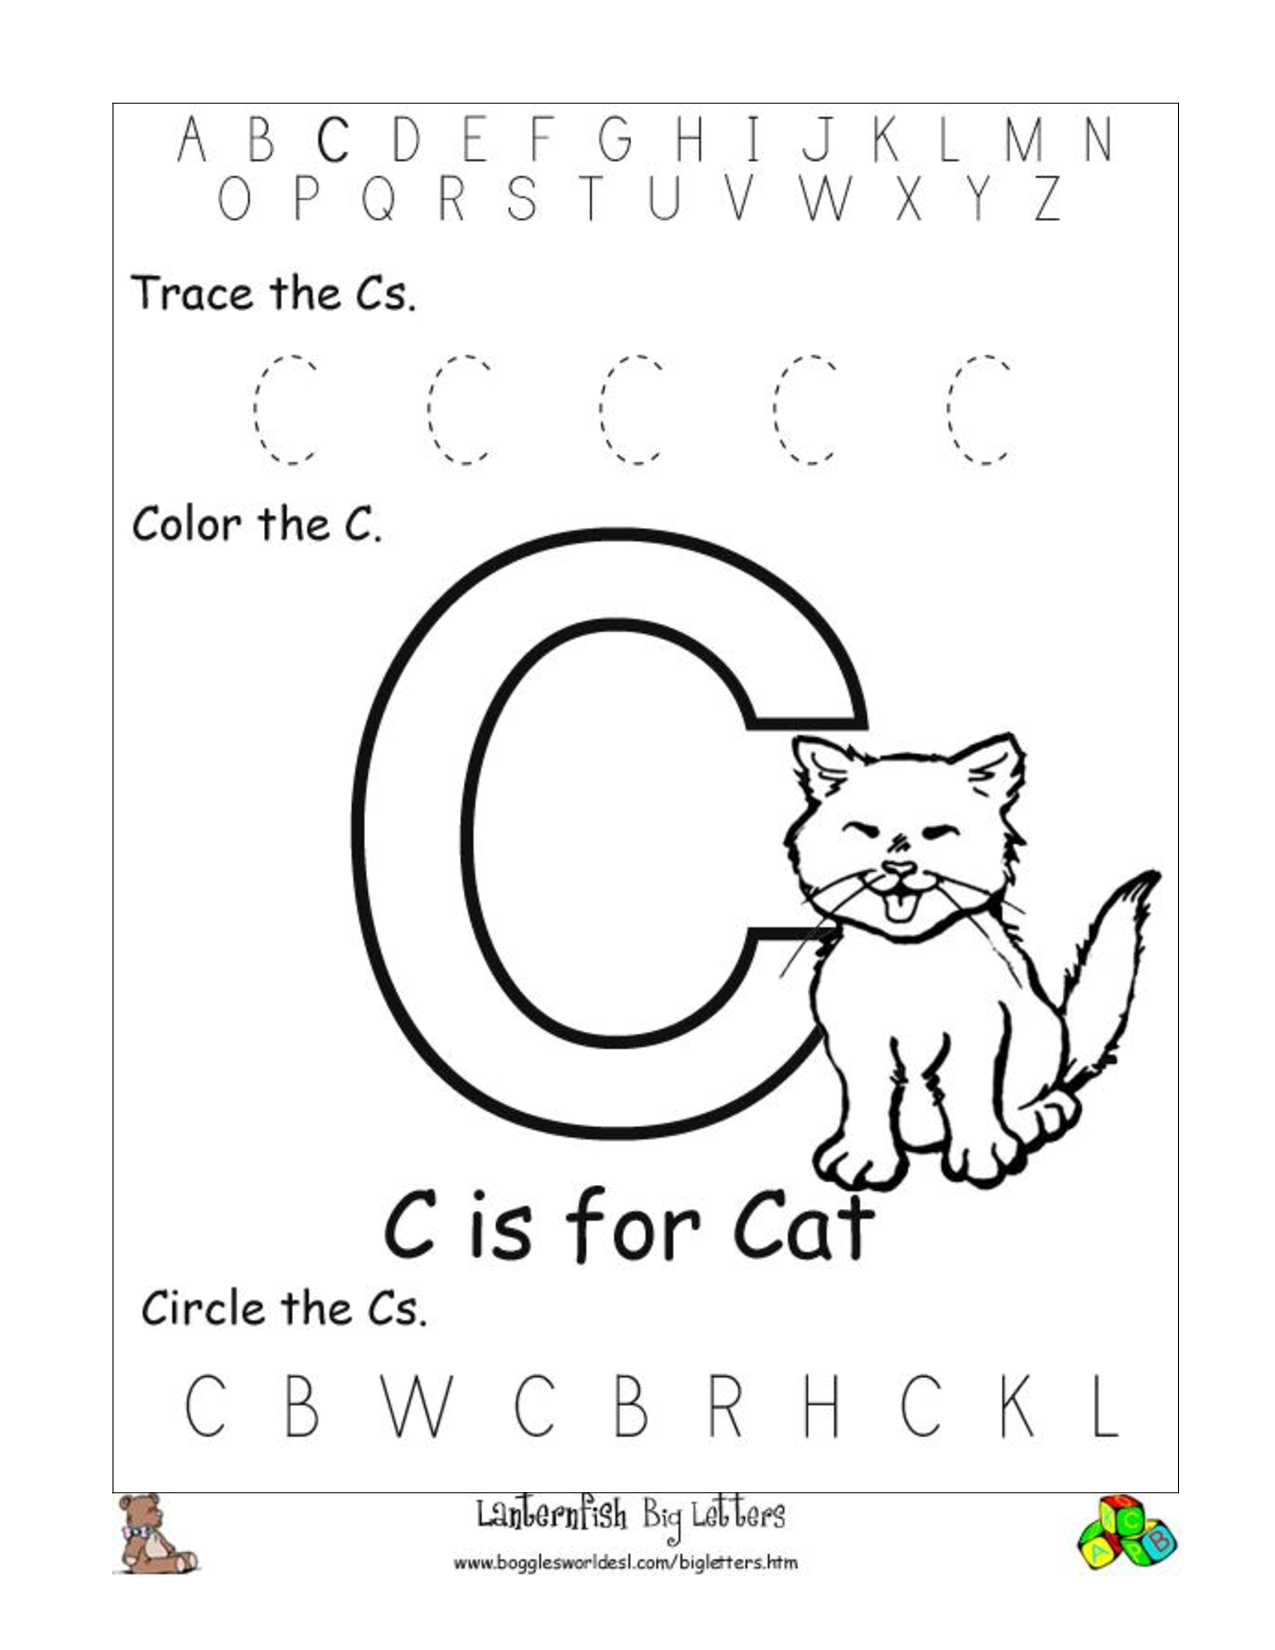 6 Best Images Of Free Printable Preschool Worksheets Letter C | Day - Free Printable Letter C Worksheets